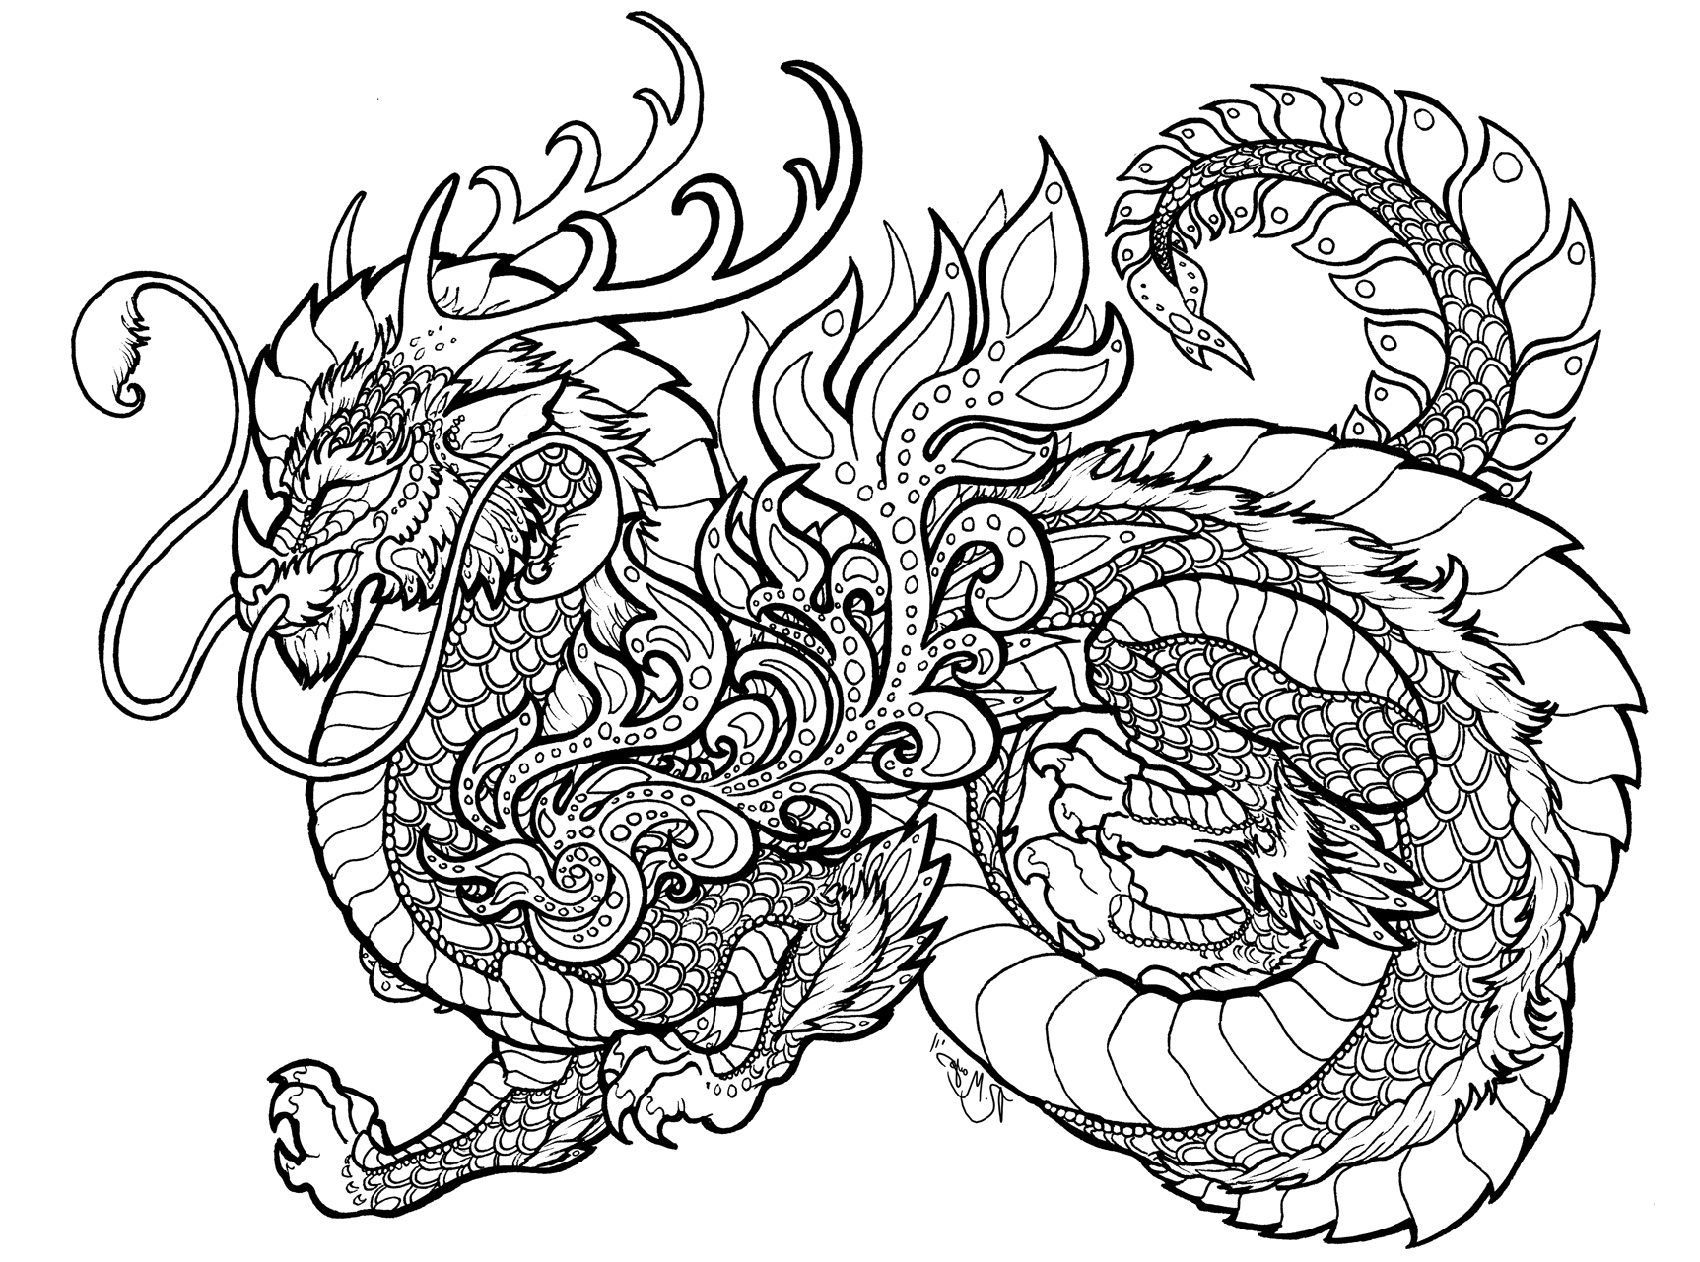 Dragon Coloring To Print Cute And Cool